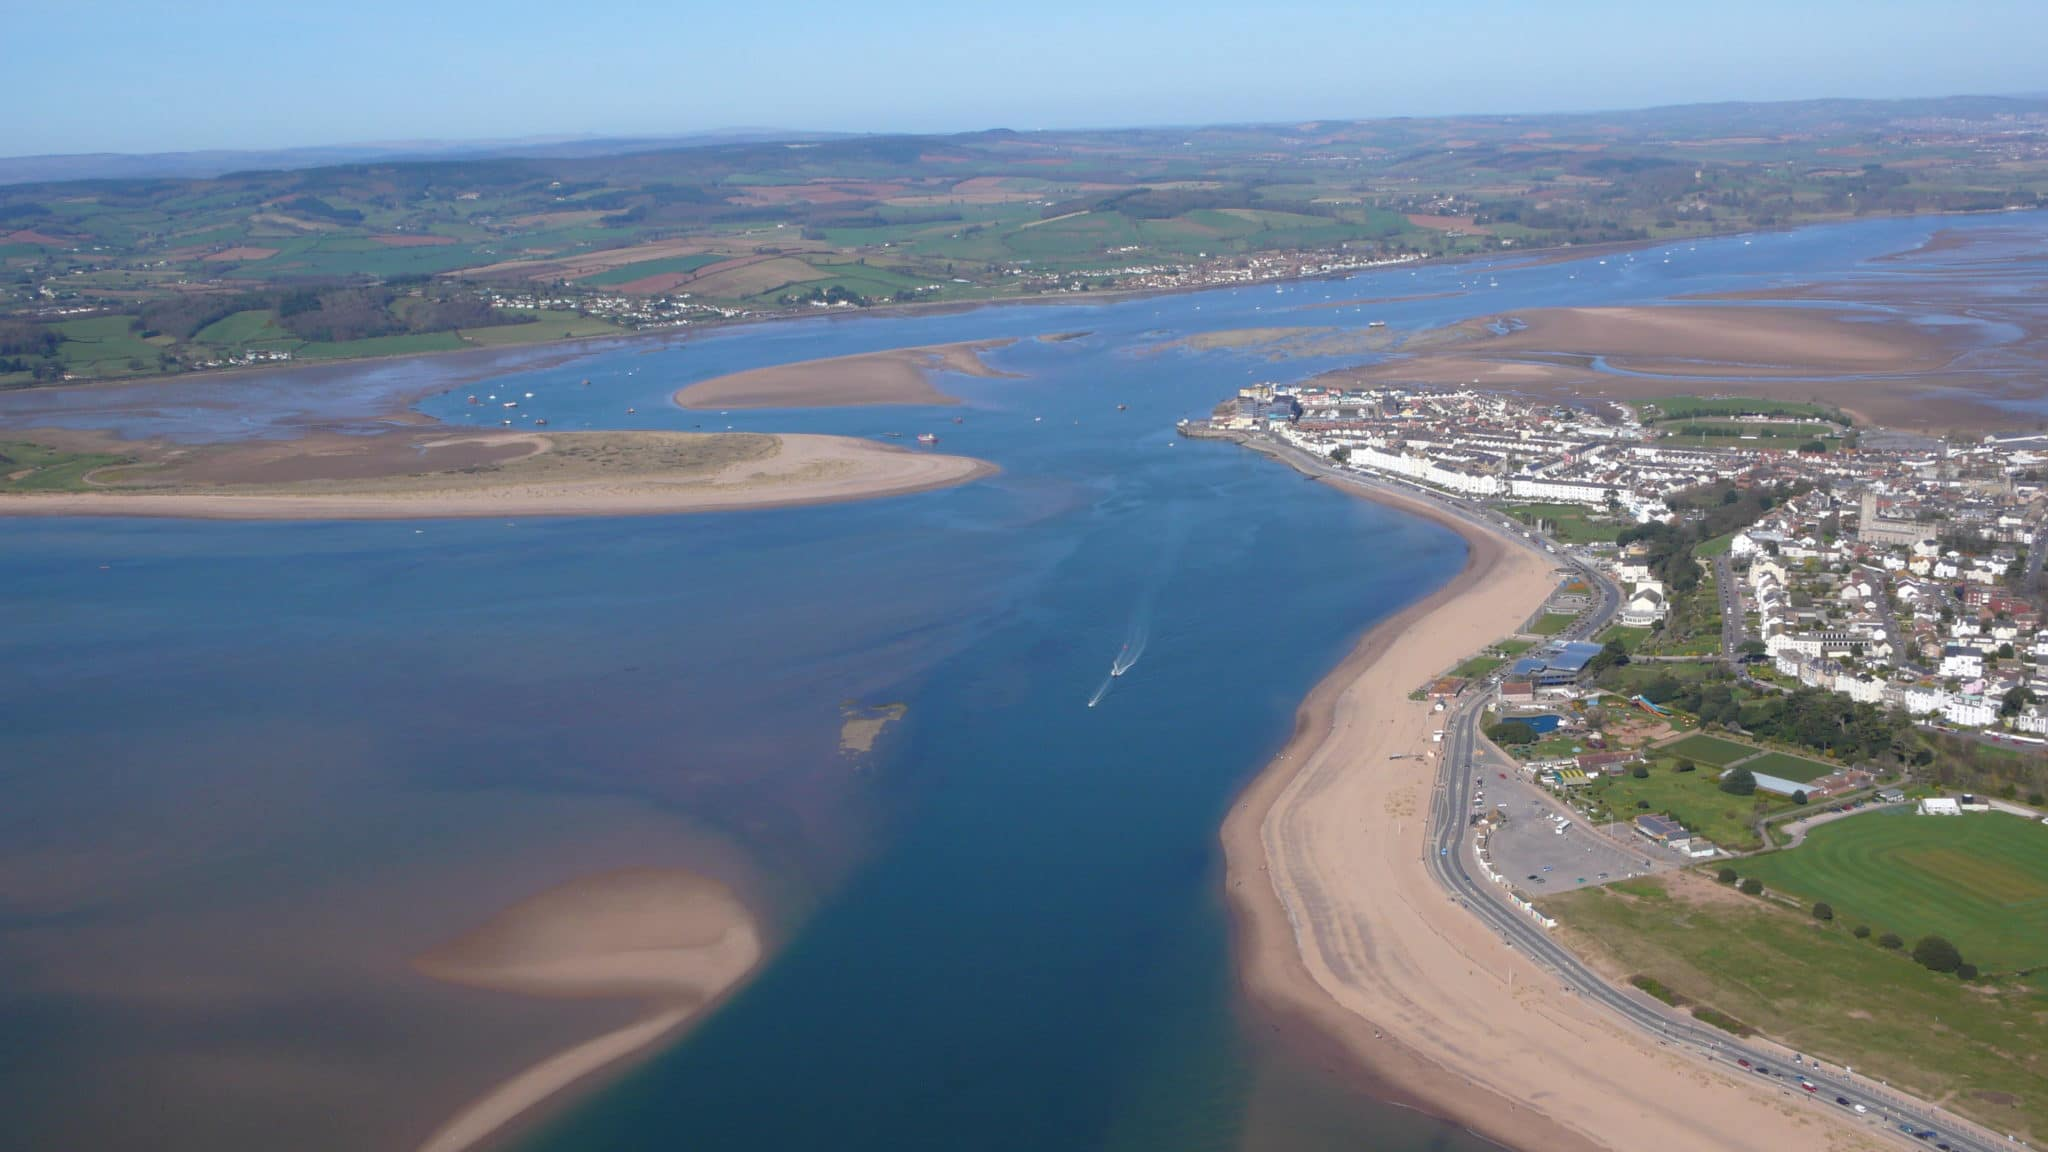 Image 1a: Aerial view of the Exe Estuary